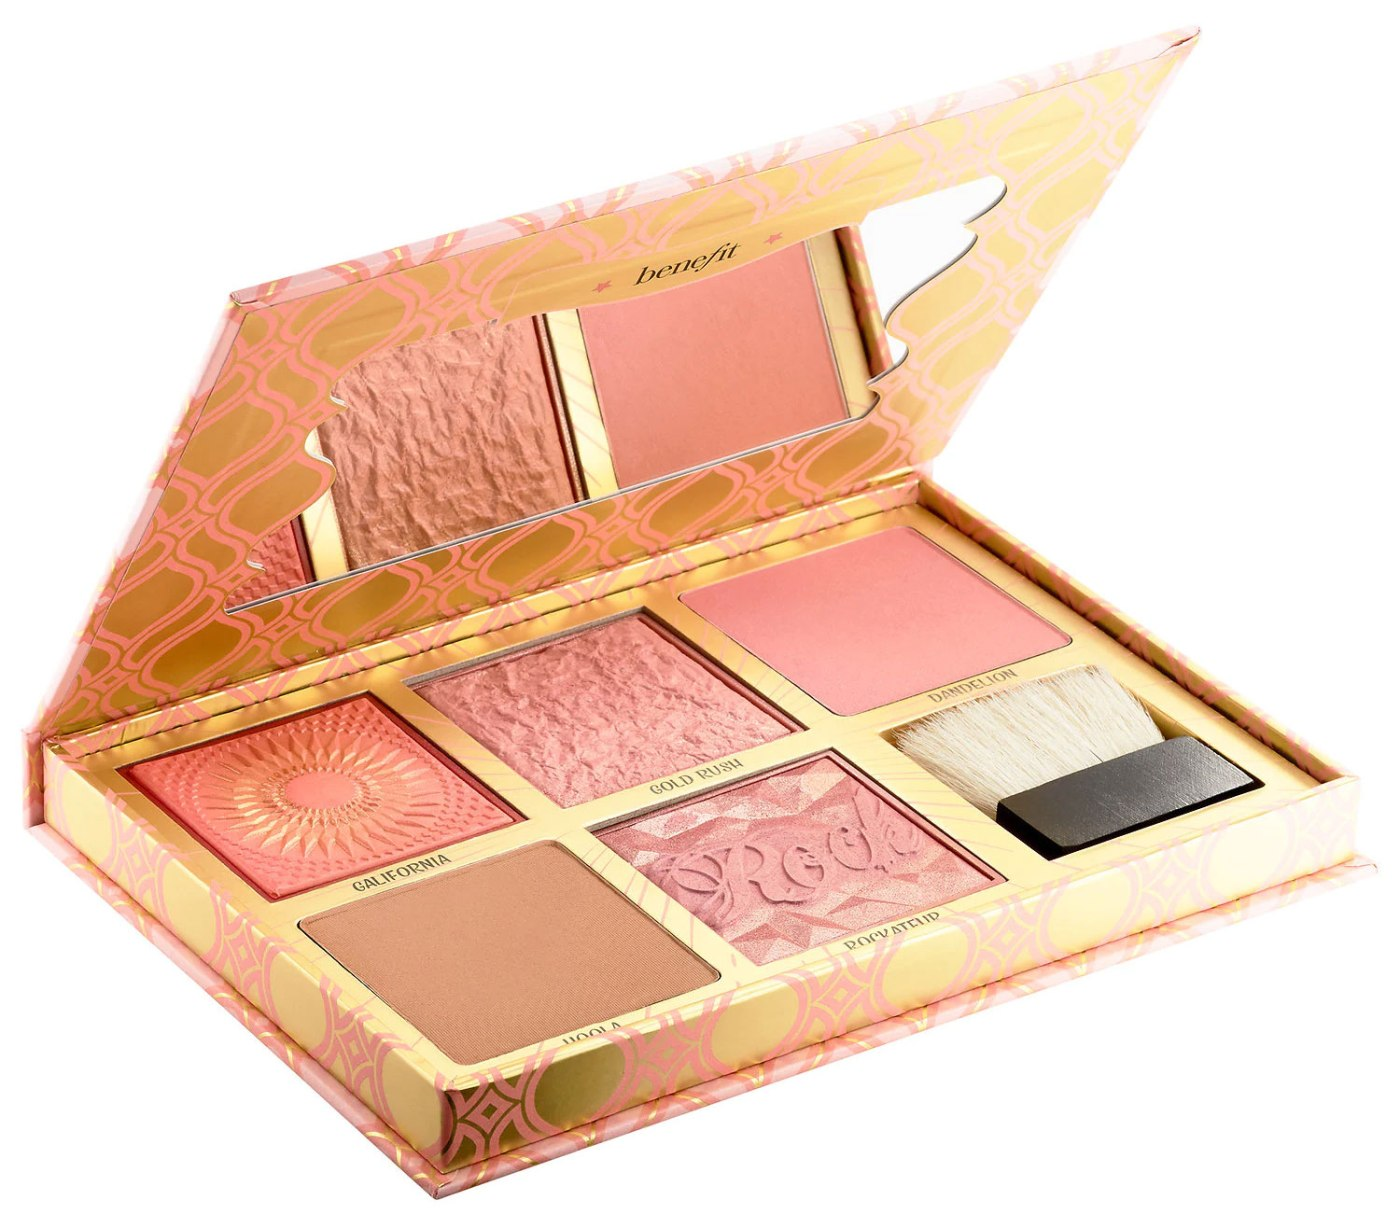 Benefit-Blush-Bar-Cheek-Palette-side